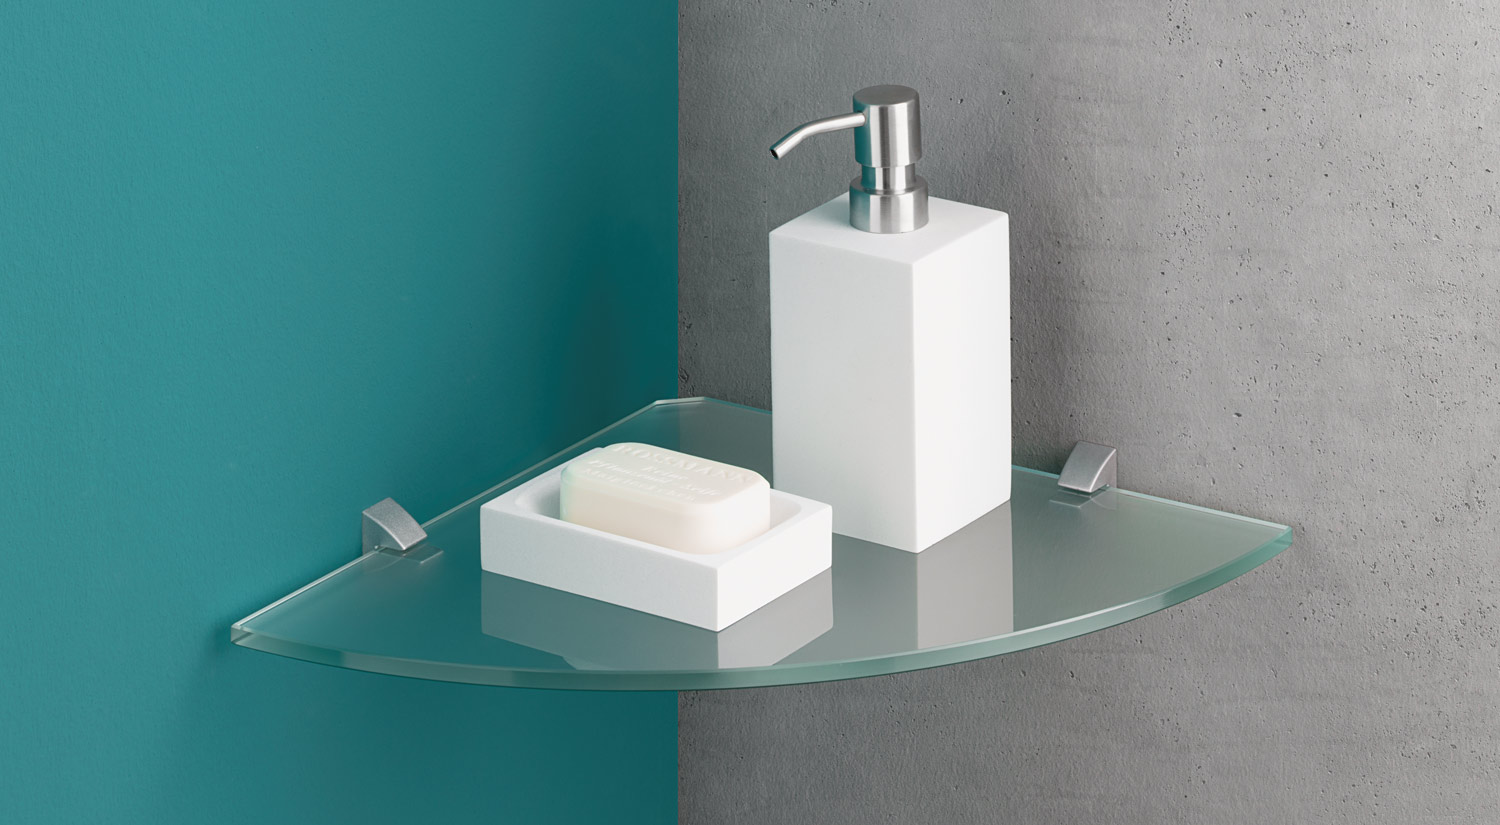 Corner shelf - CORNER+CLIP glass shelf for bathroom